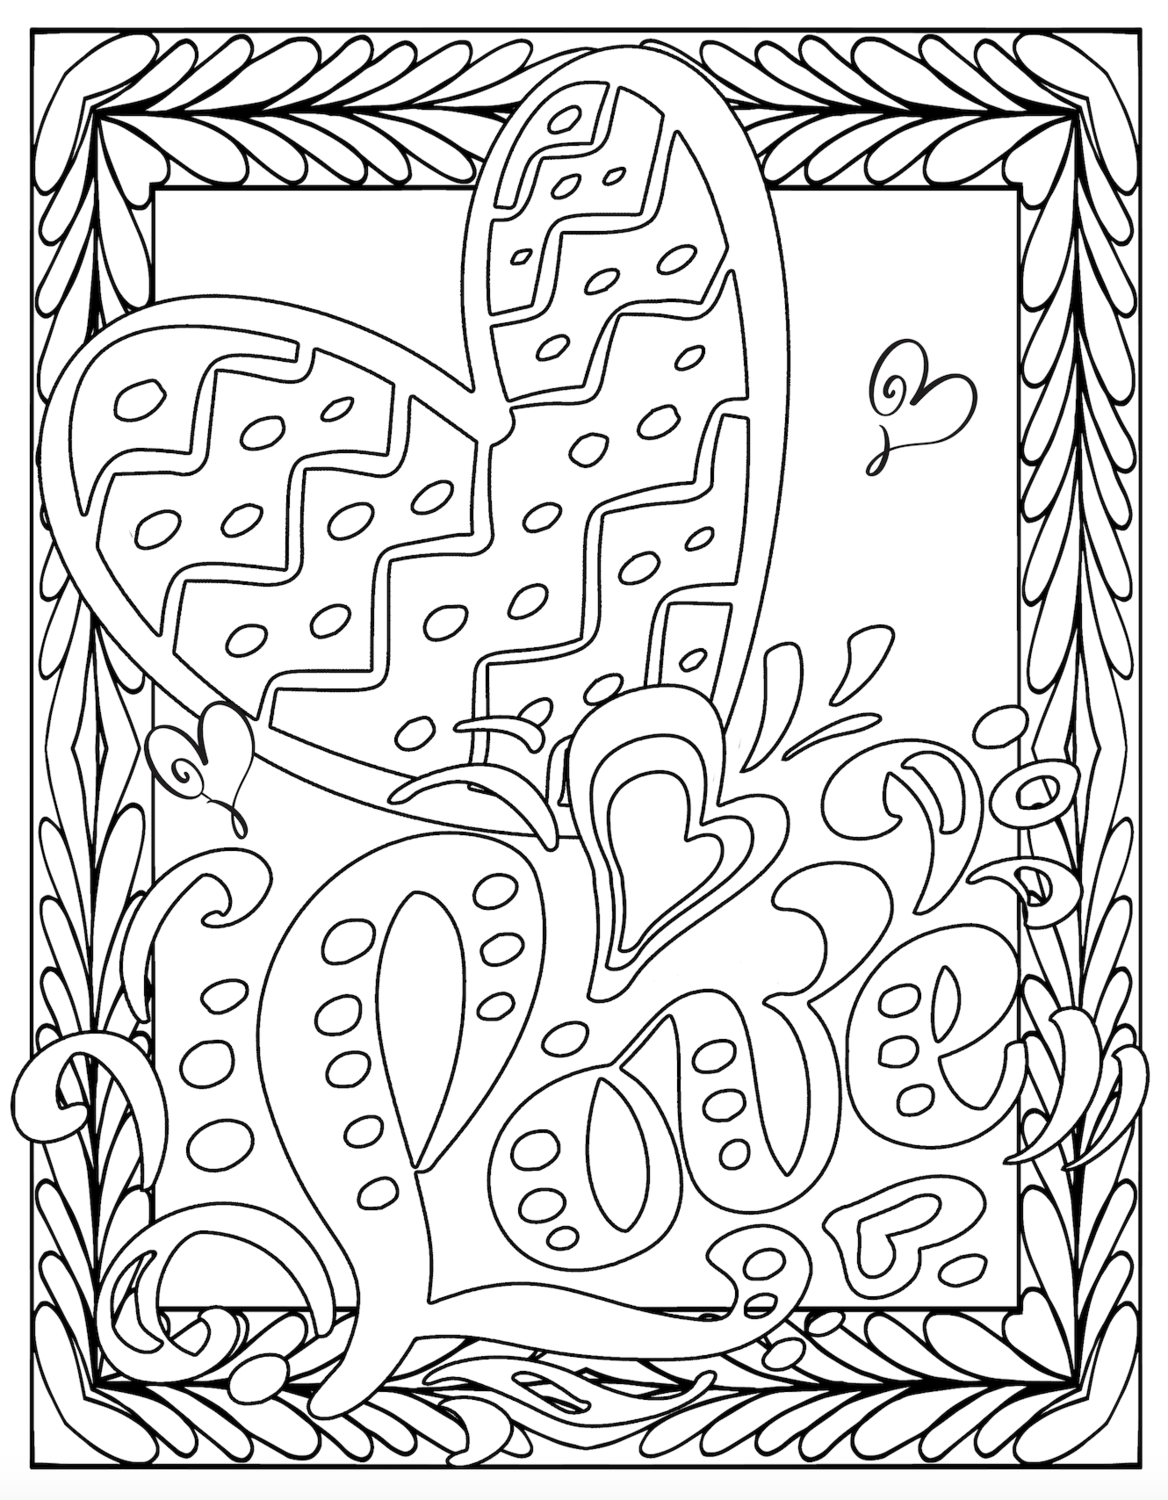 coloring love love coloring pages best coloring pages for kids coloring love